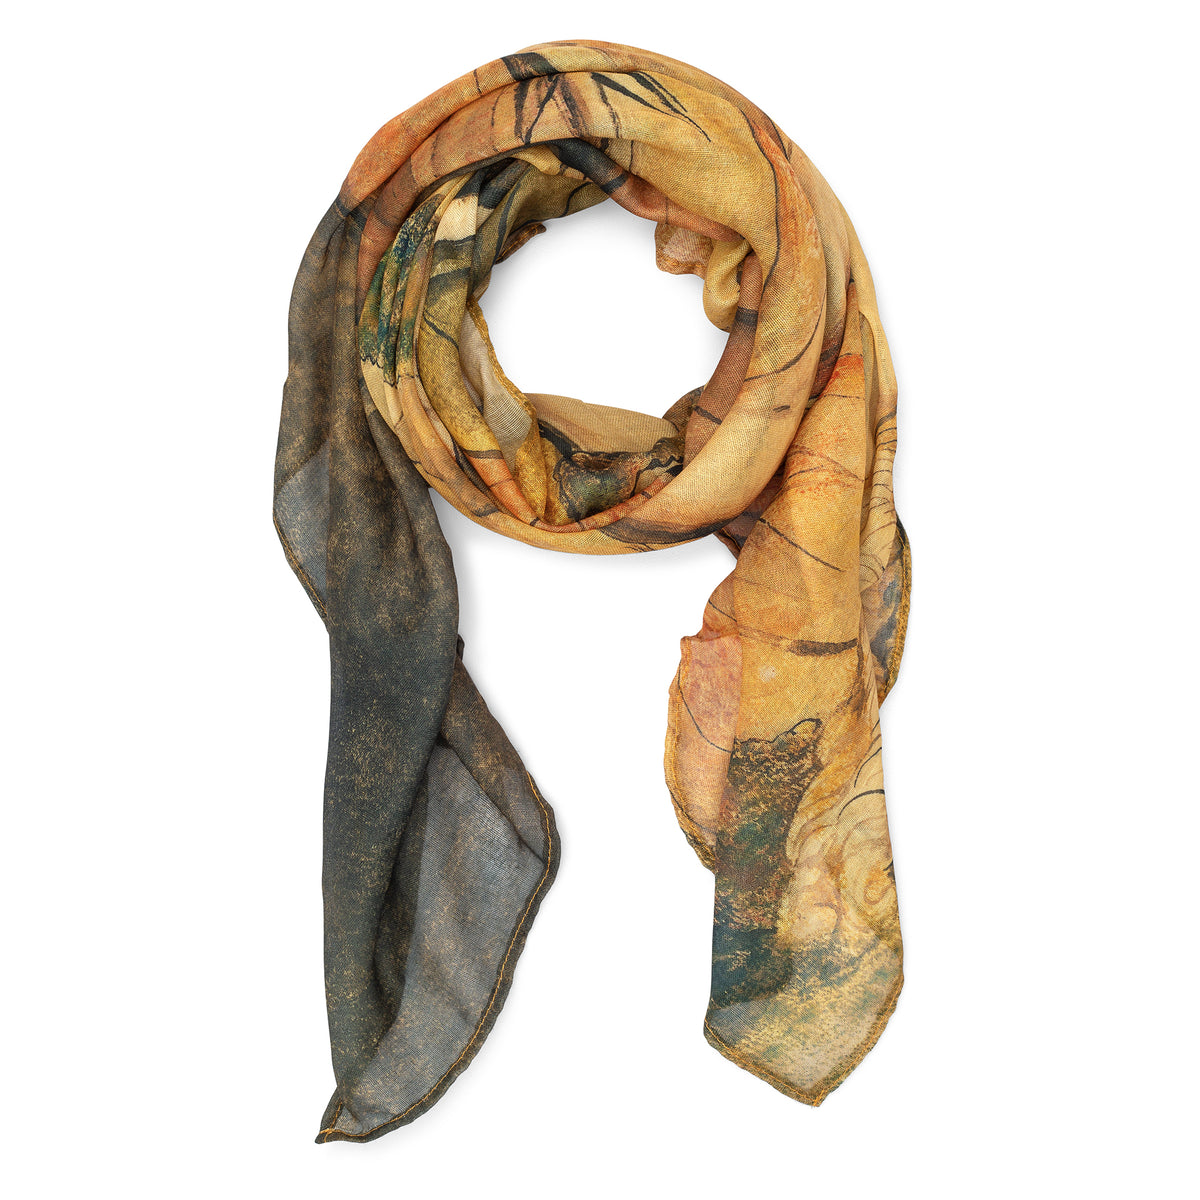 William Blake Scarf